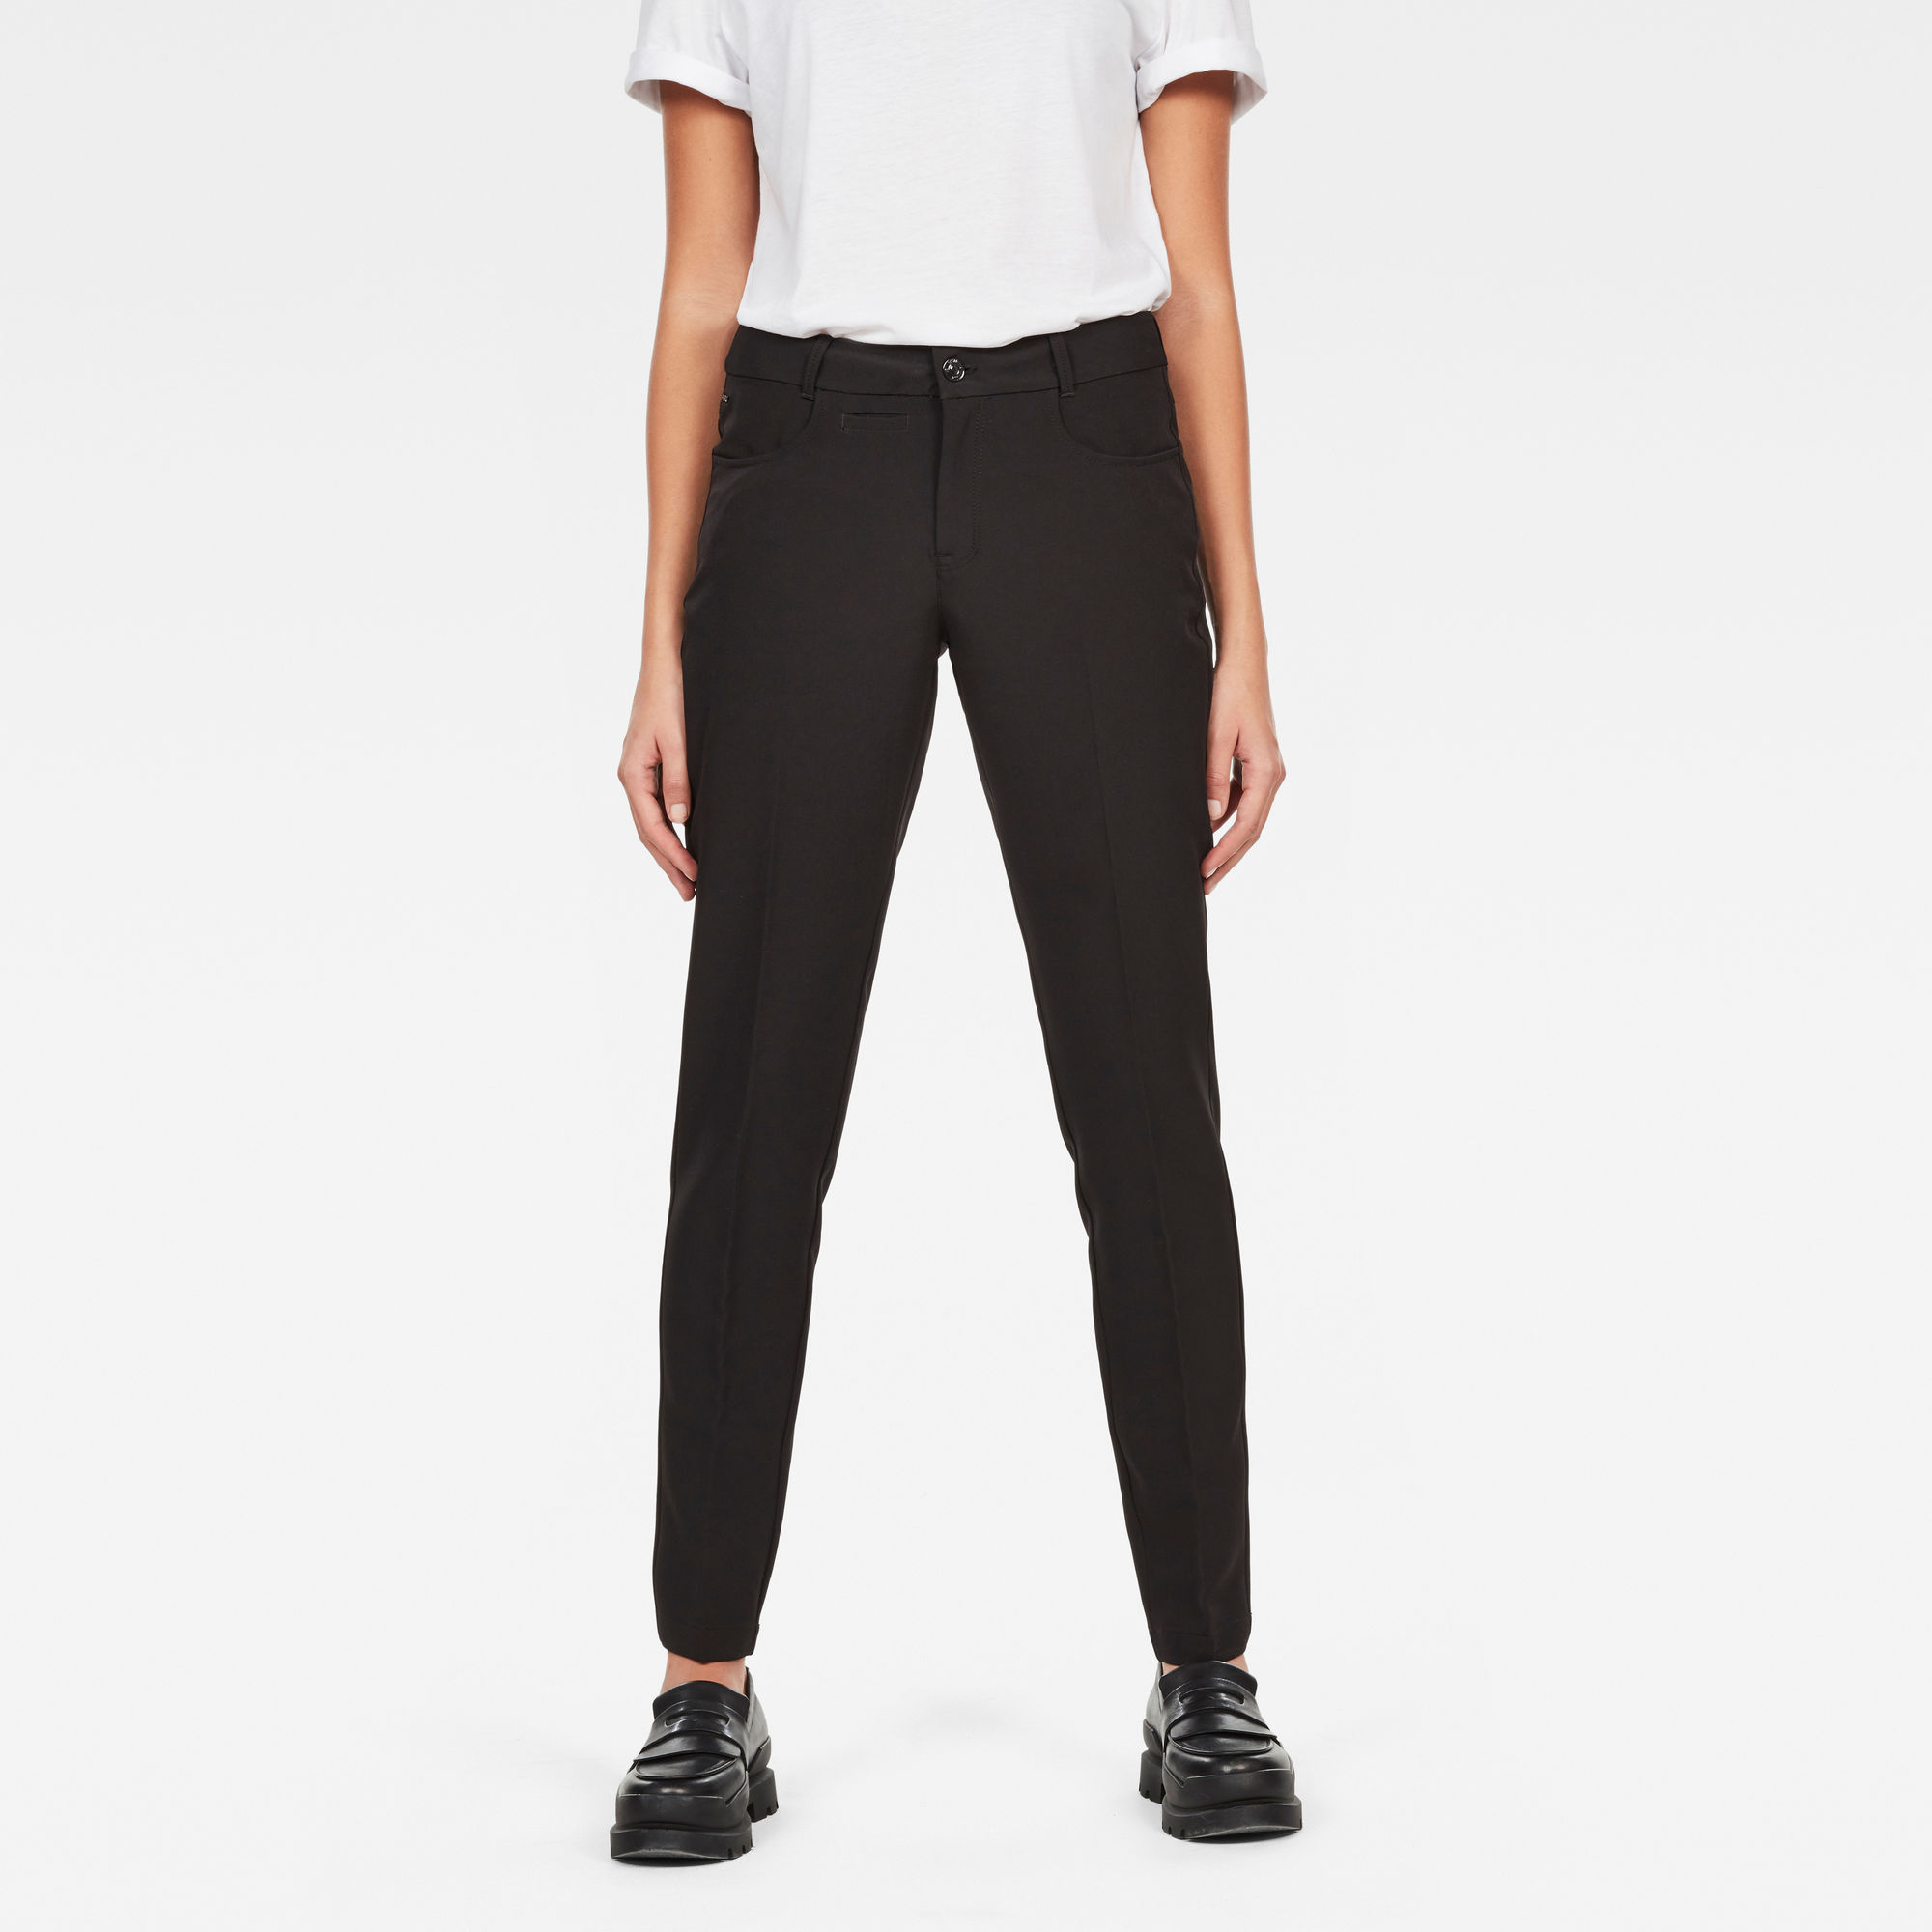 Image of G Star Raw D-Staq Mid Waist Skinny Ankle Chino